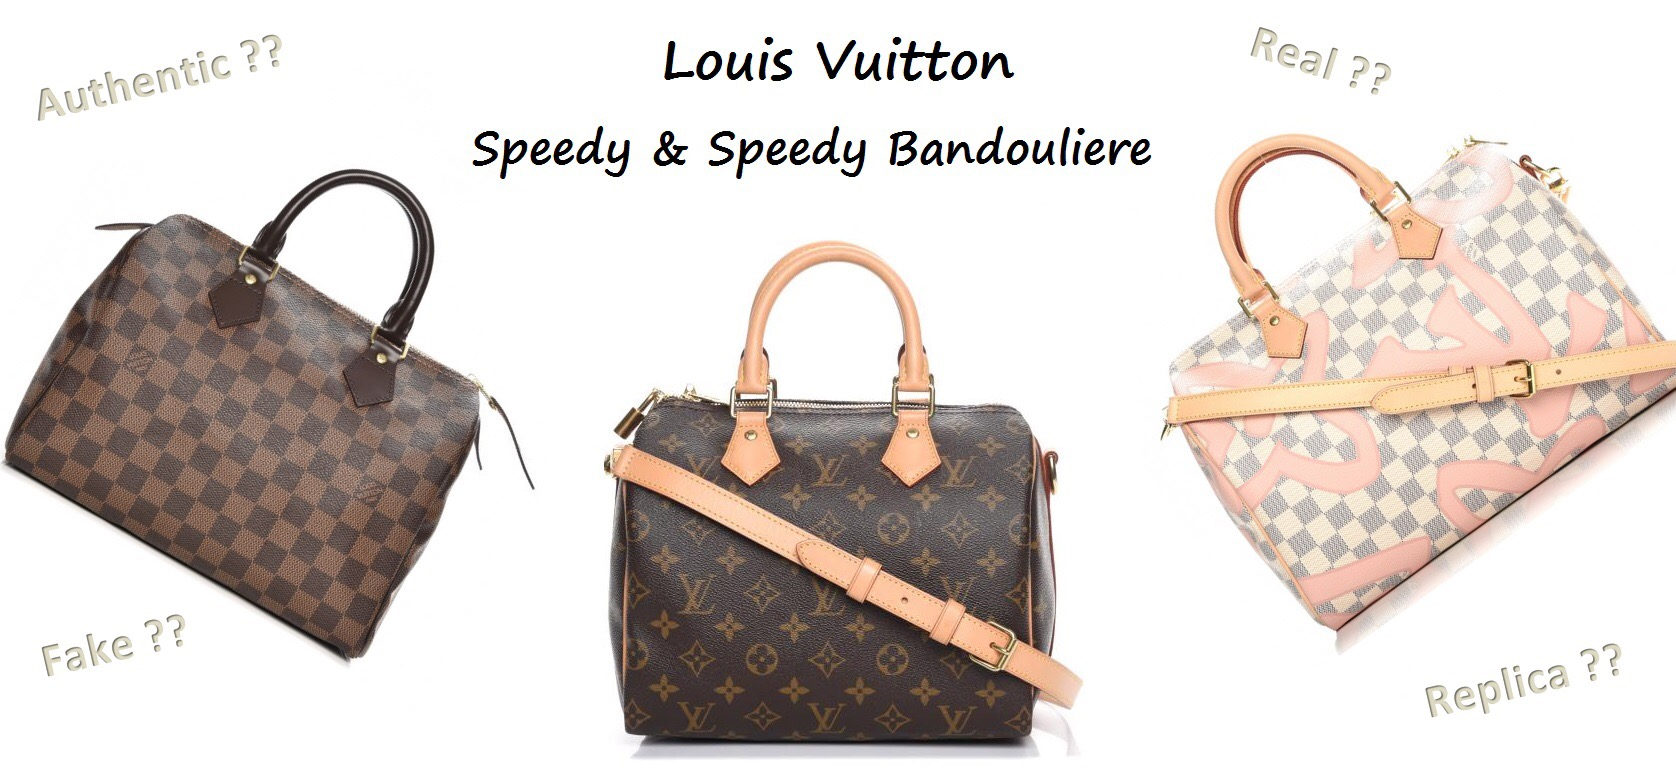 29e1f87bb57d How to Spot a Fake Louis Vuitton Bag 101 ǀ Speedy   Speedy Bandouliere